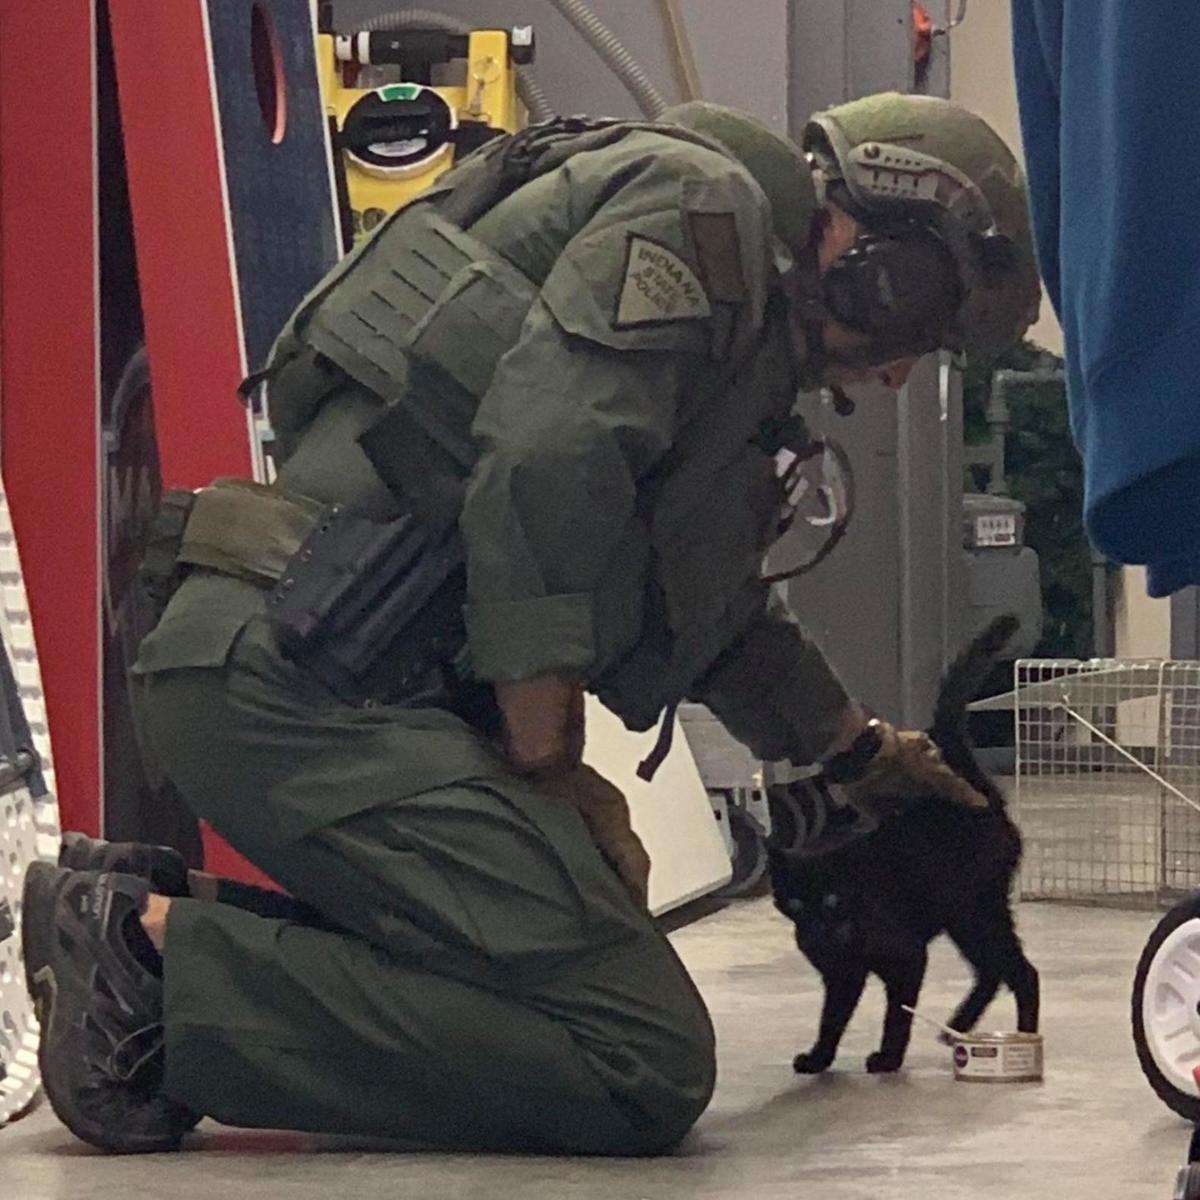 Stray kitten finds new home after wandering into SWAT training zone